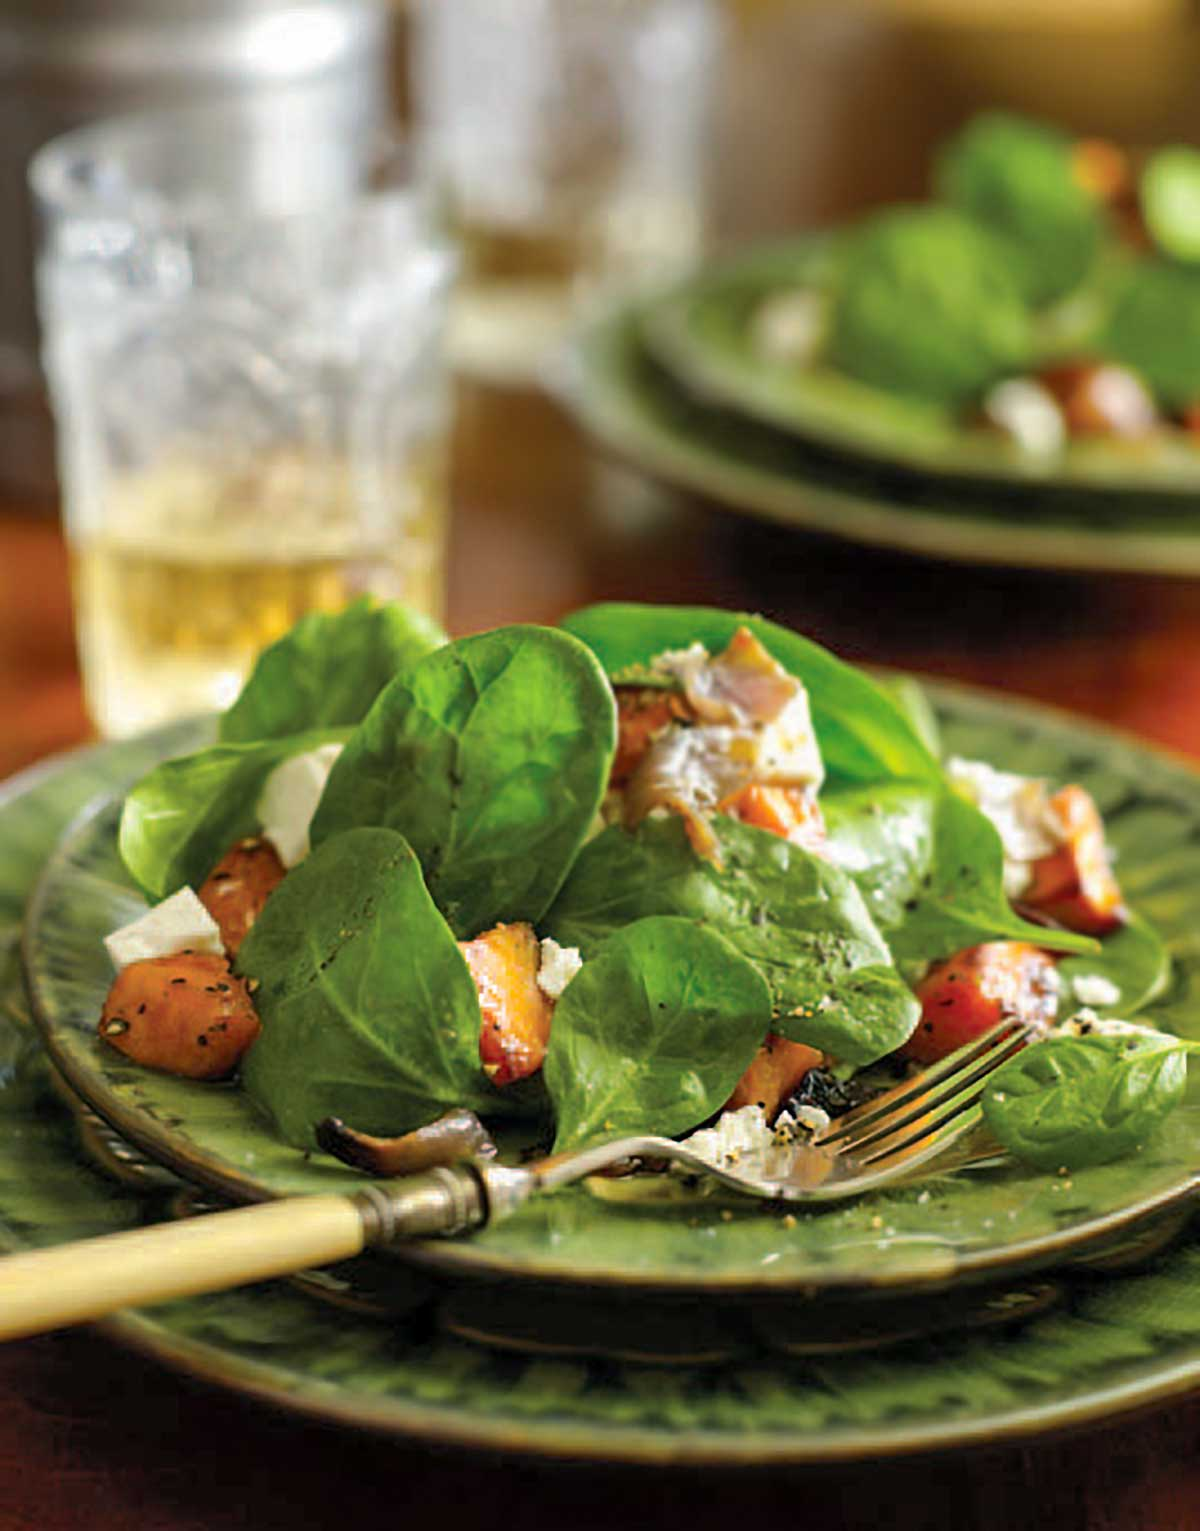 A serving of roasted sweet potato and feta salad on a green plate with a fork resting on the plate.